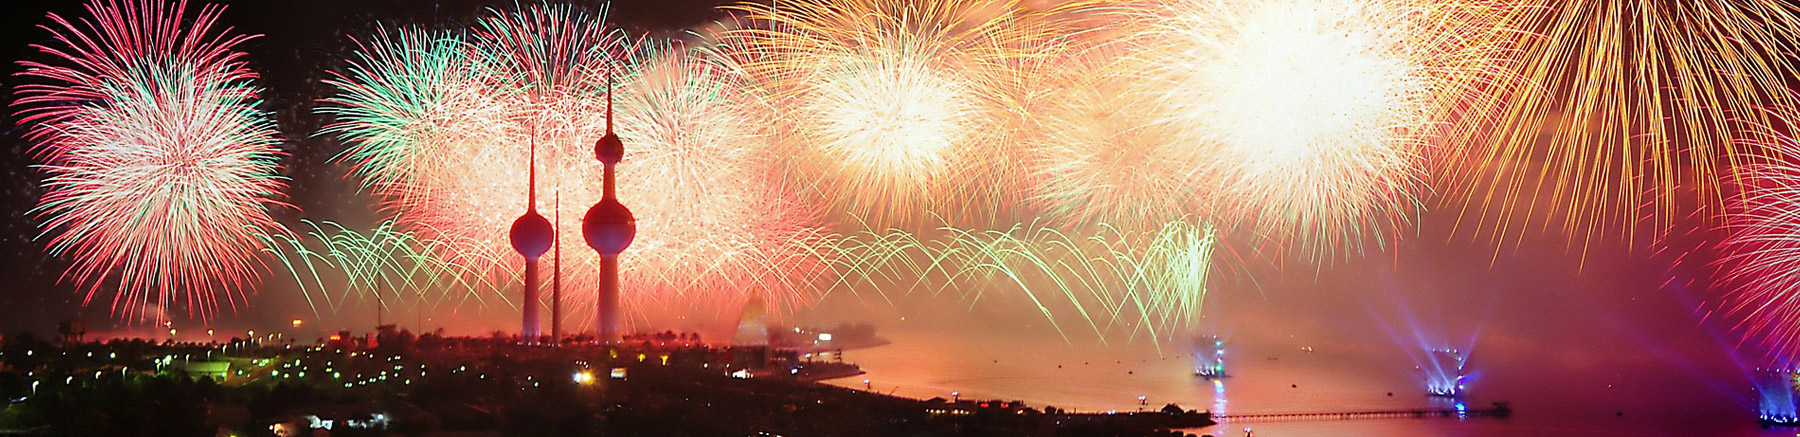 Fireworks in Koweit City with a view over the bay and the three Kuwait Towers